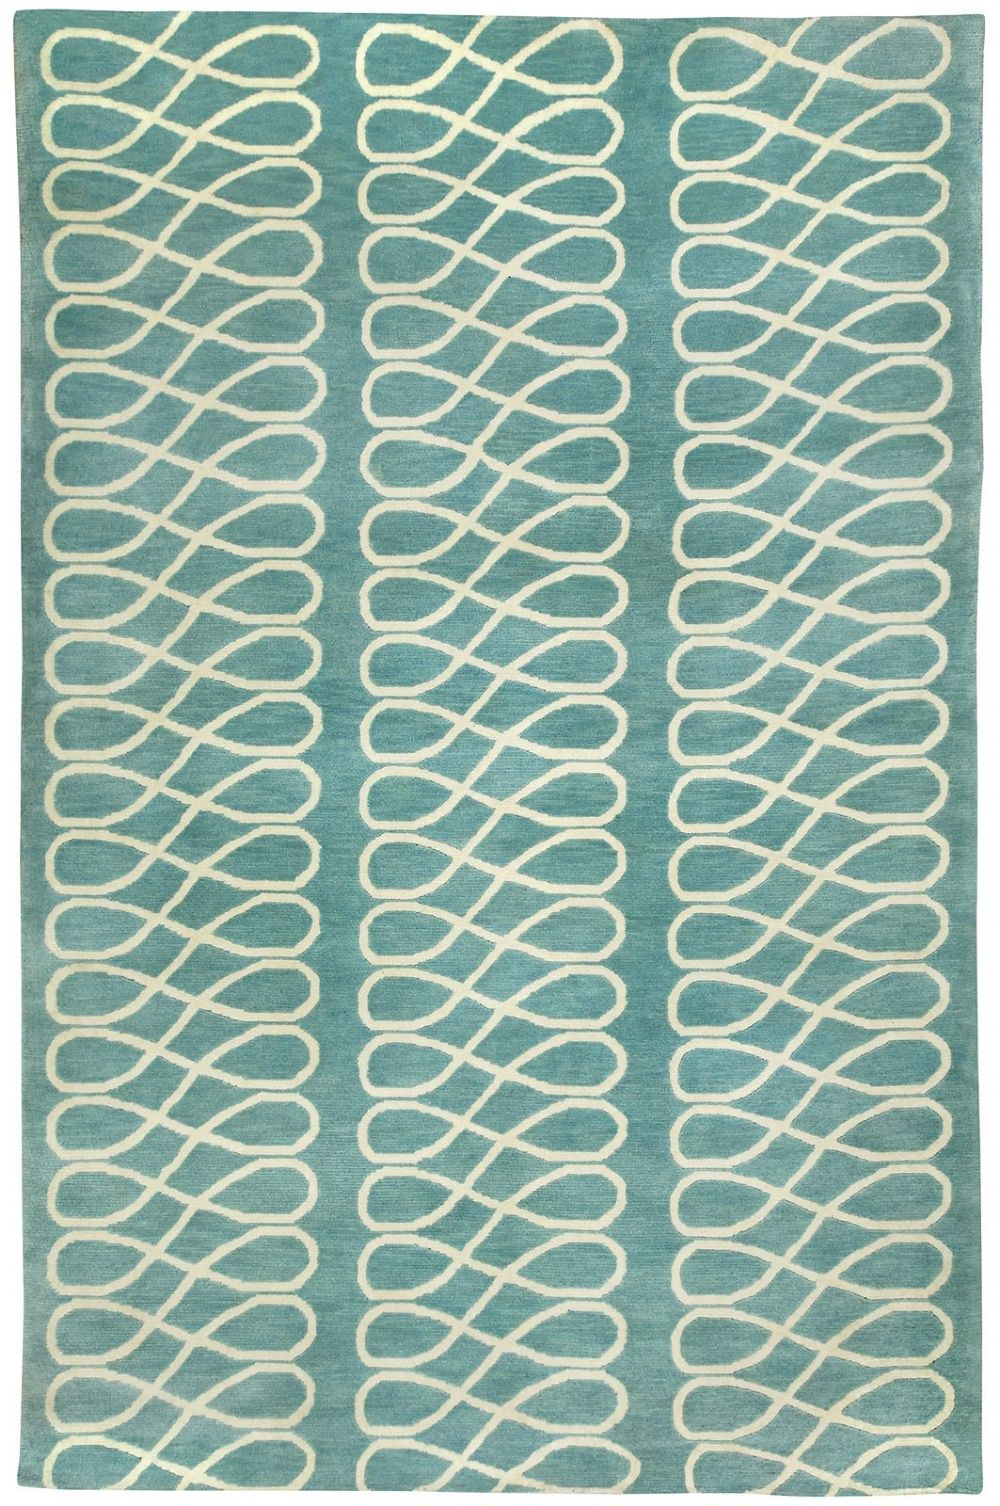 capel twirl contemporary area rug collection